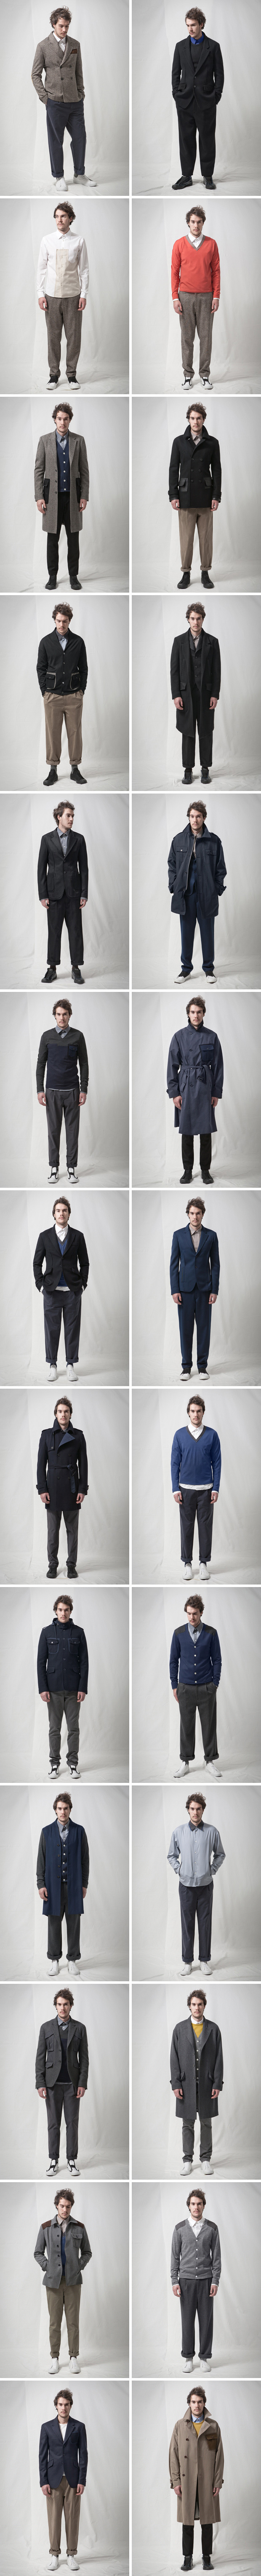 cy choi 2011 fallwinter inosculation collection